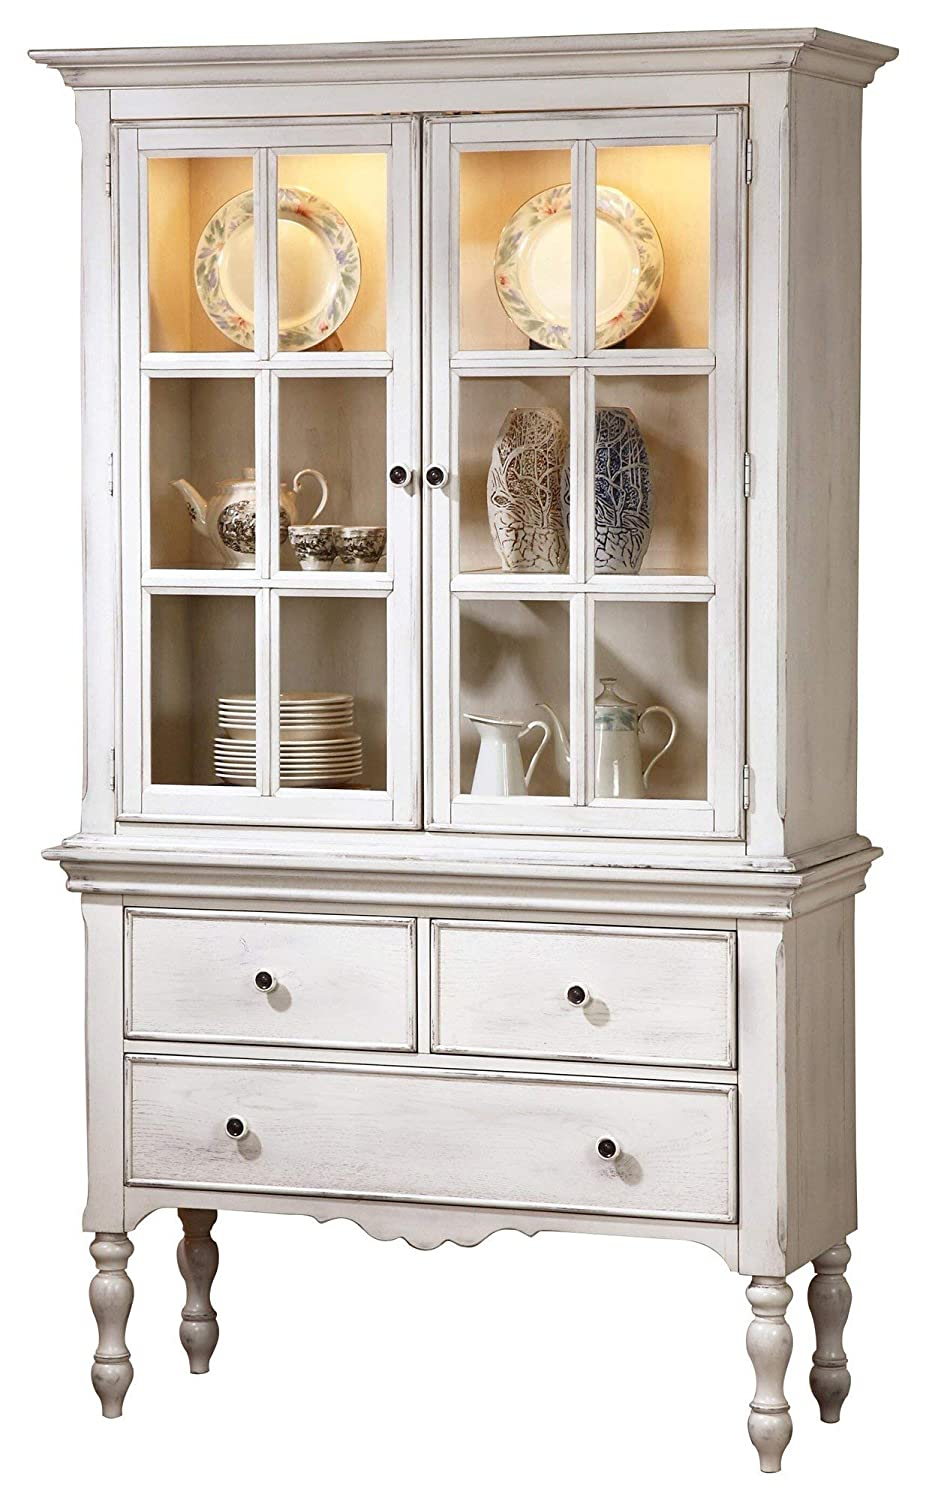 Fabulous Haggens Rusticated Country Buffet Hutch In White Amazon Interior Design Ideas Clesiryabchikinfo